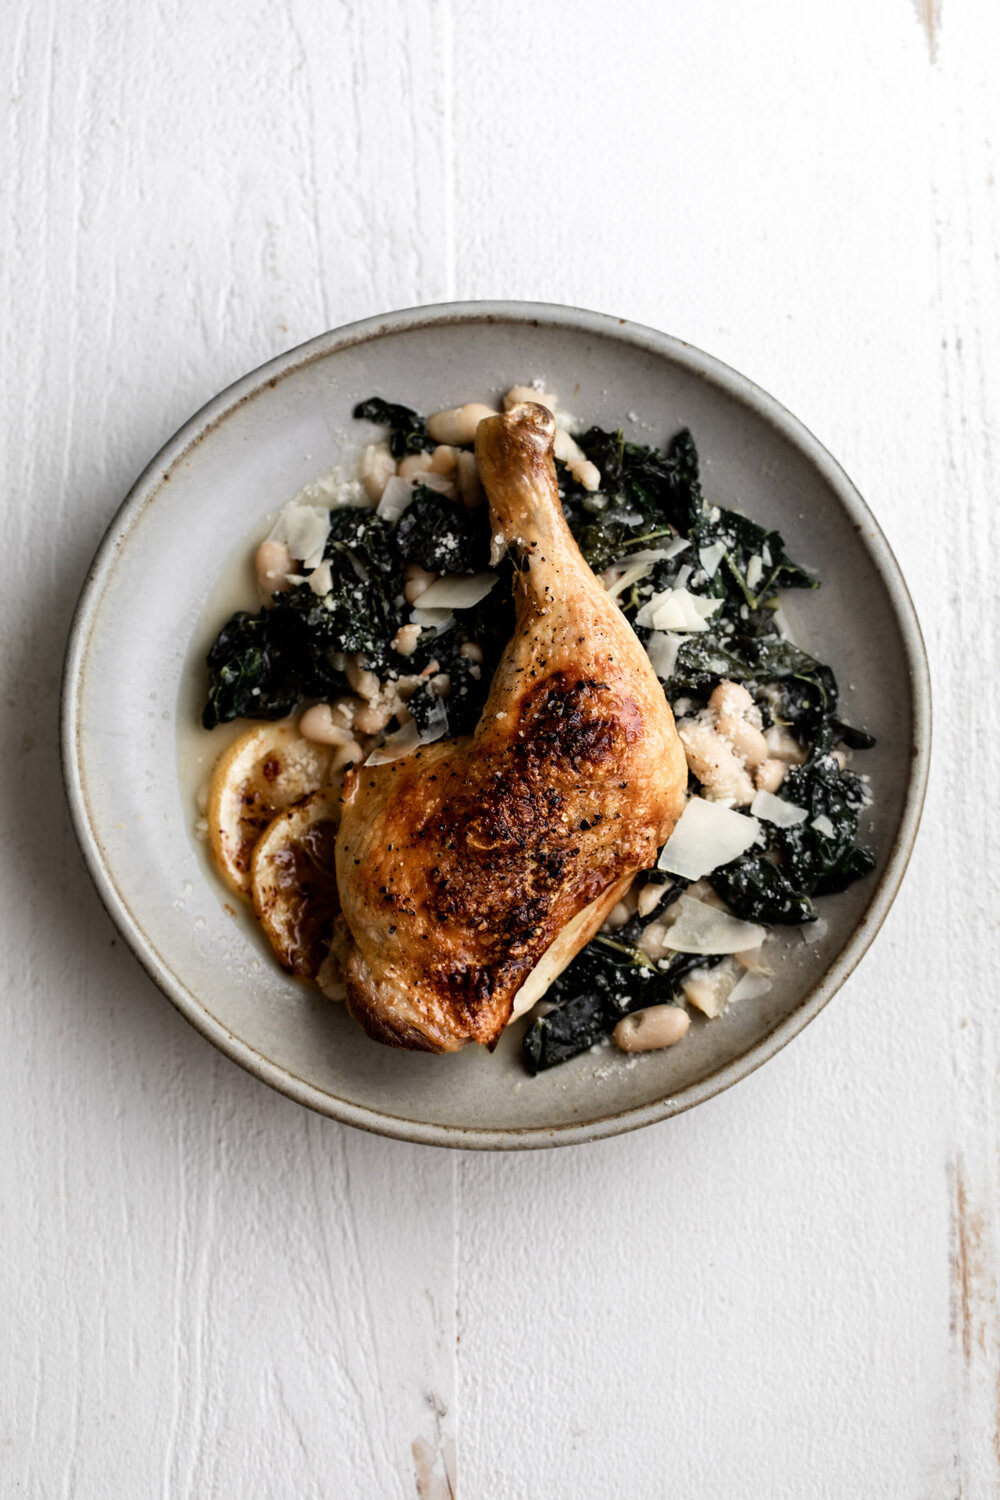 Roast Chicken Legs with Braised Kale and White Beans